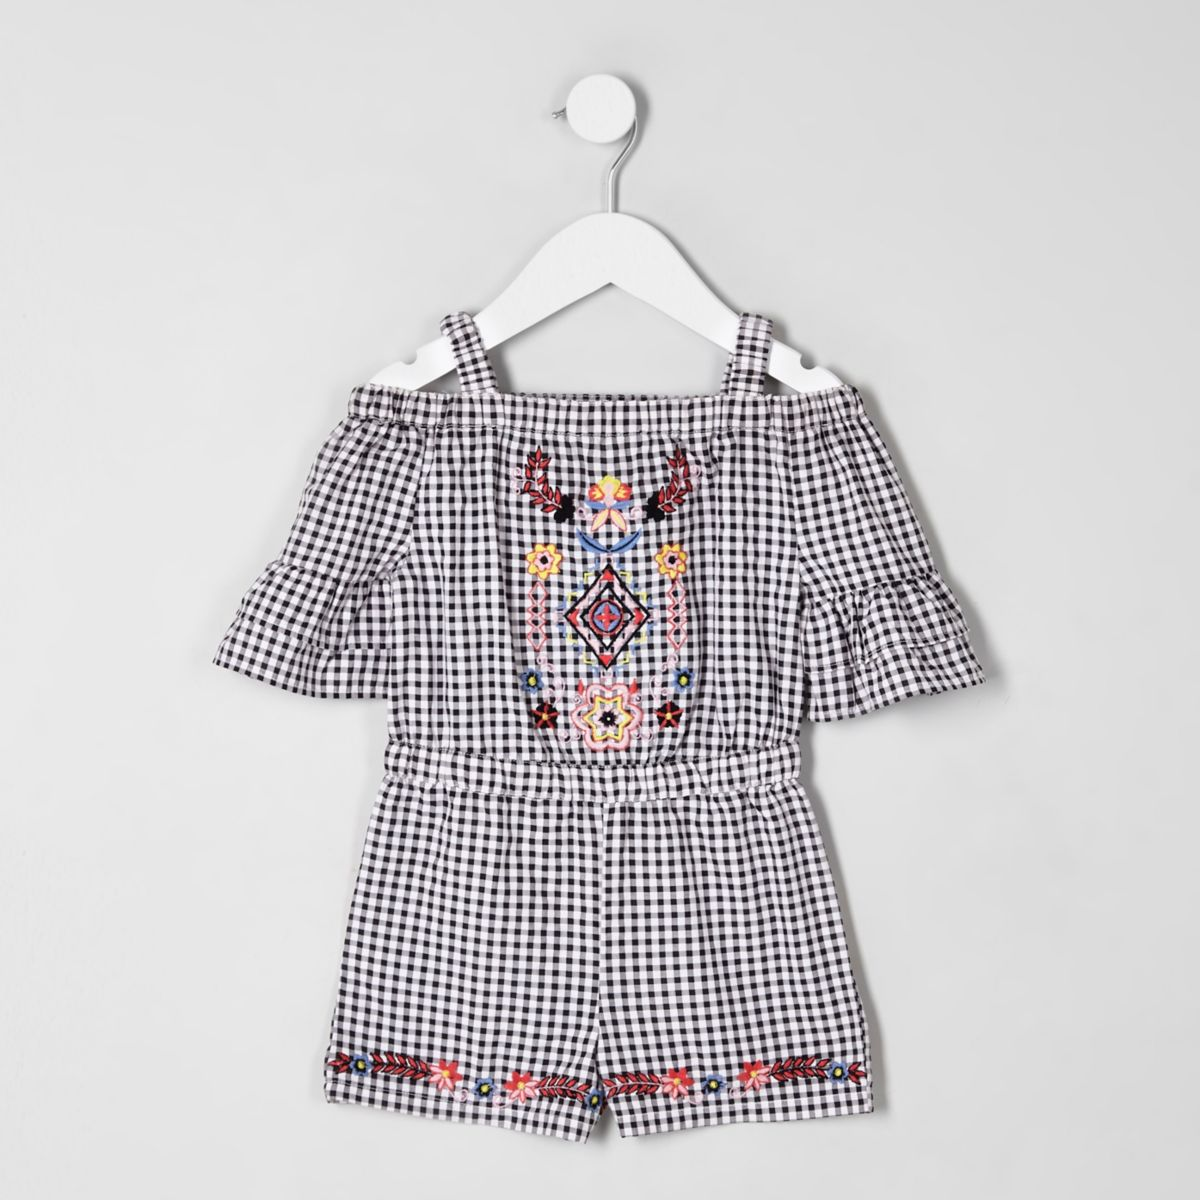 Mini girls black gingham embroidered romper